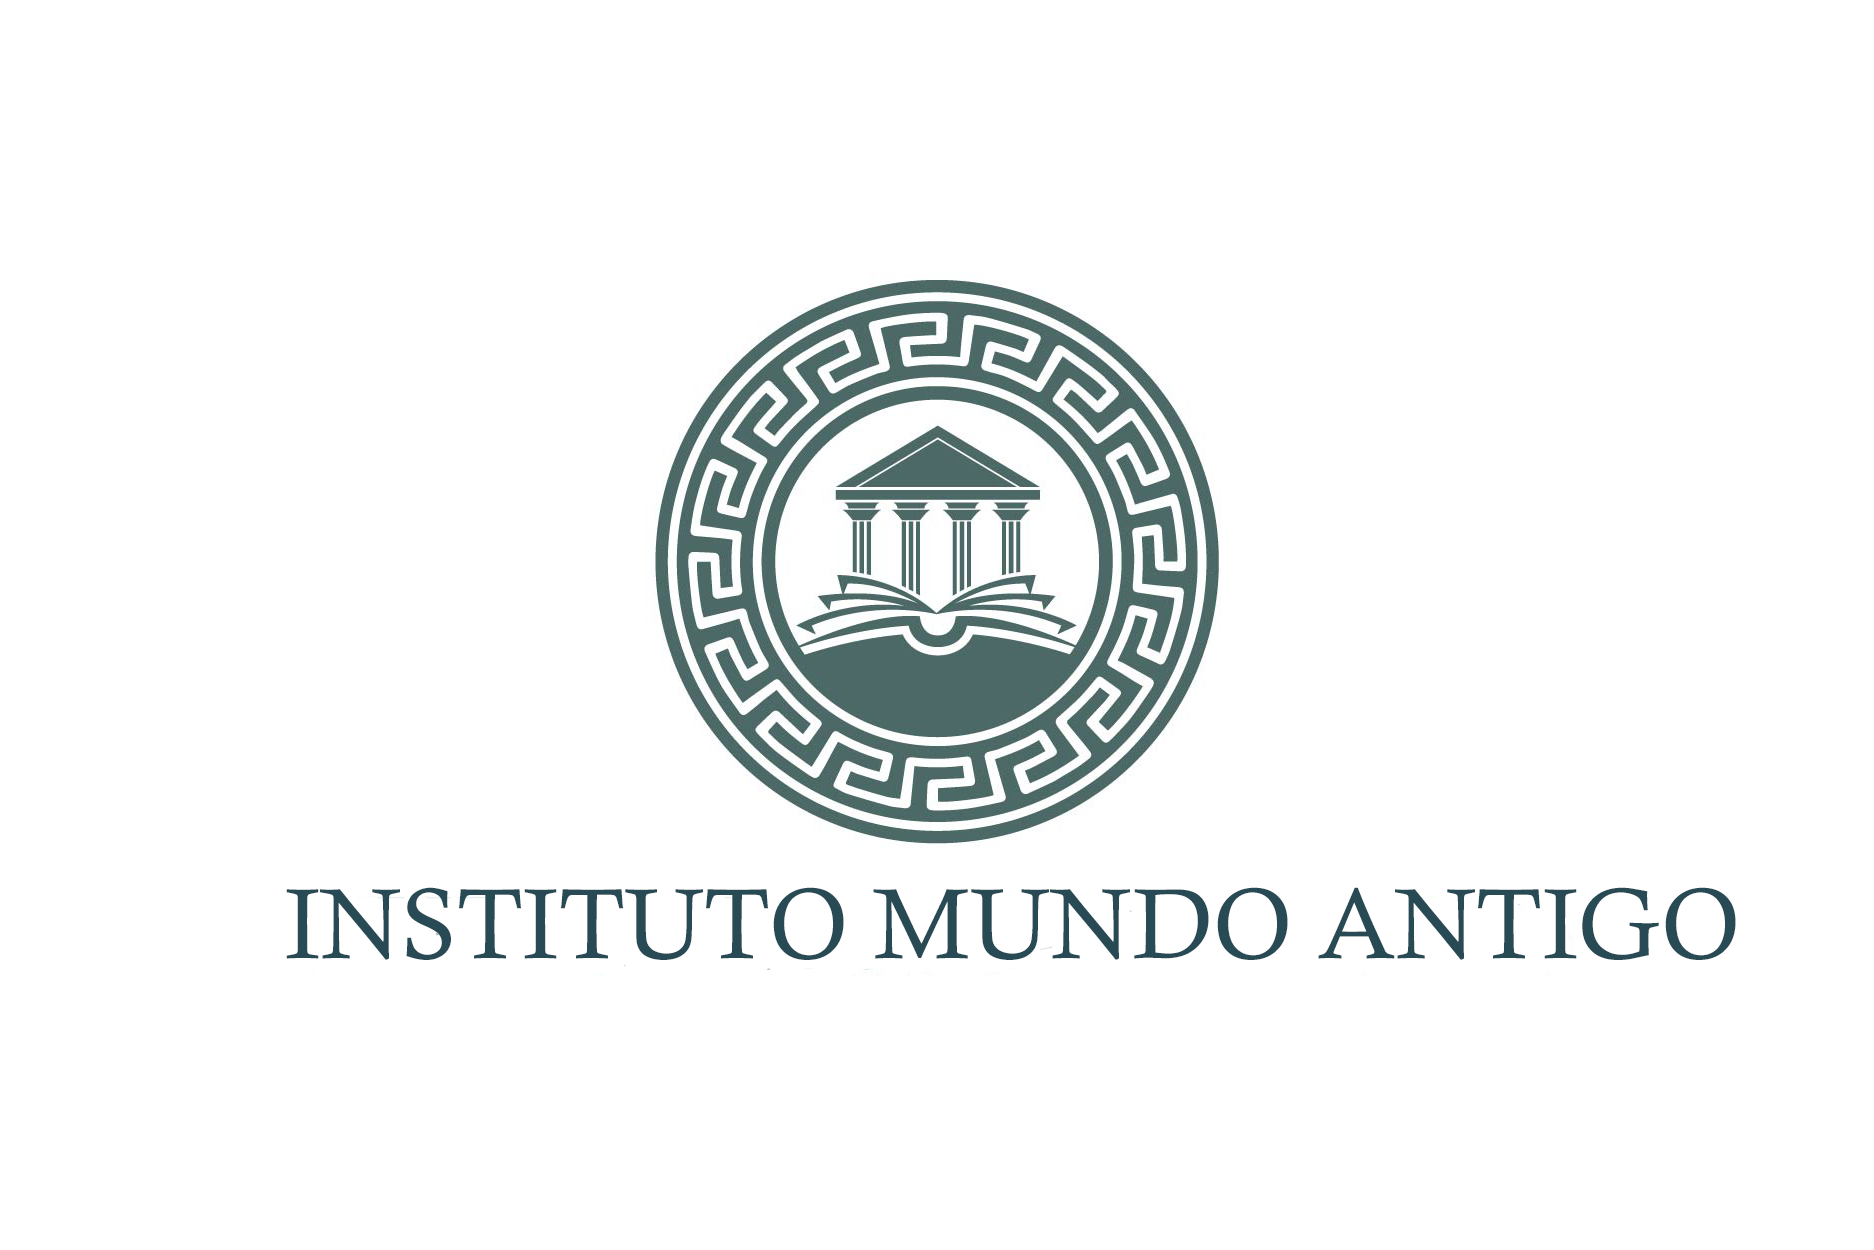 Instituto Mundo Antigo